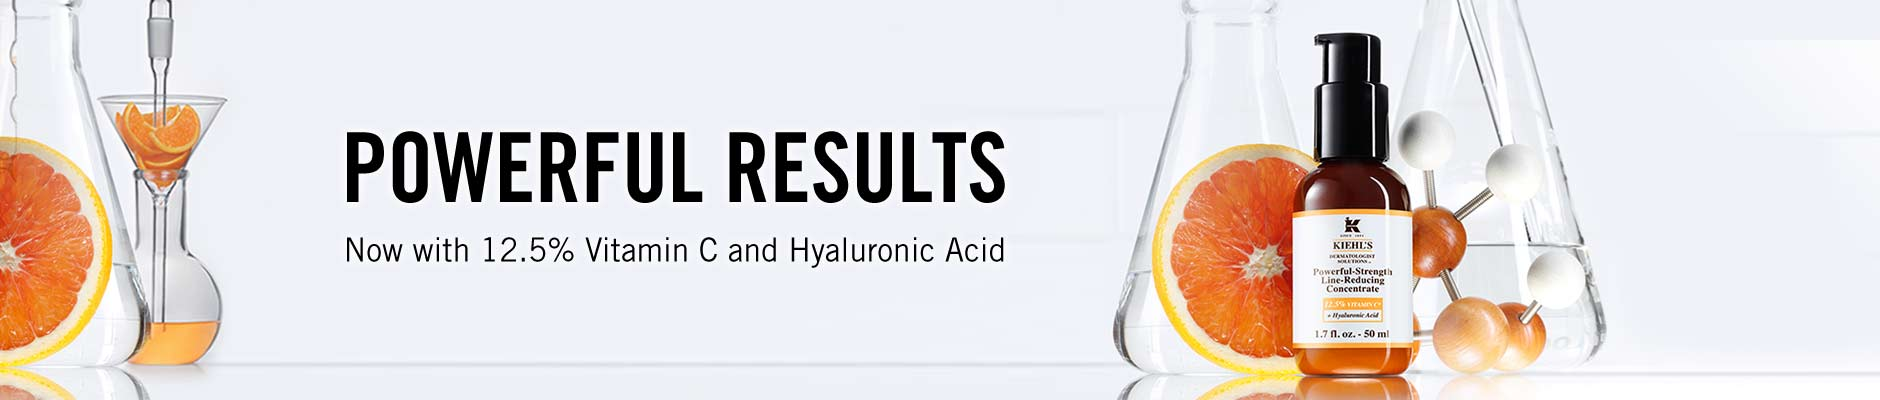 Powerful Results - Now with 12.5% vitamin c and hyaluronic acid